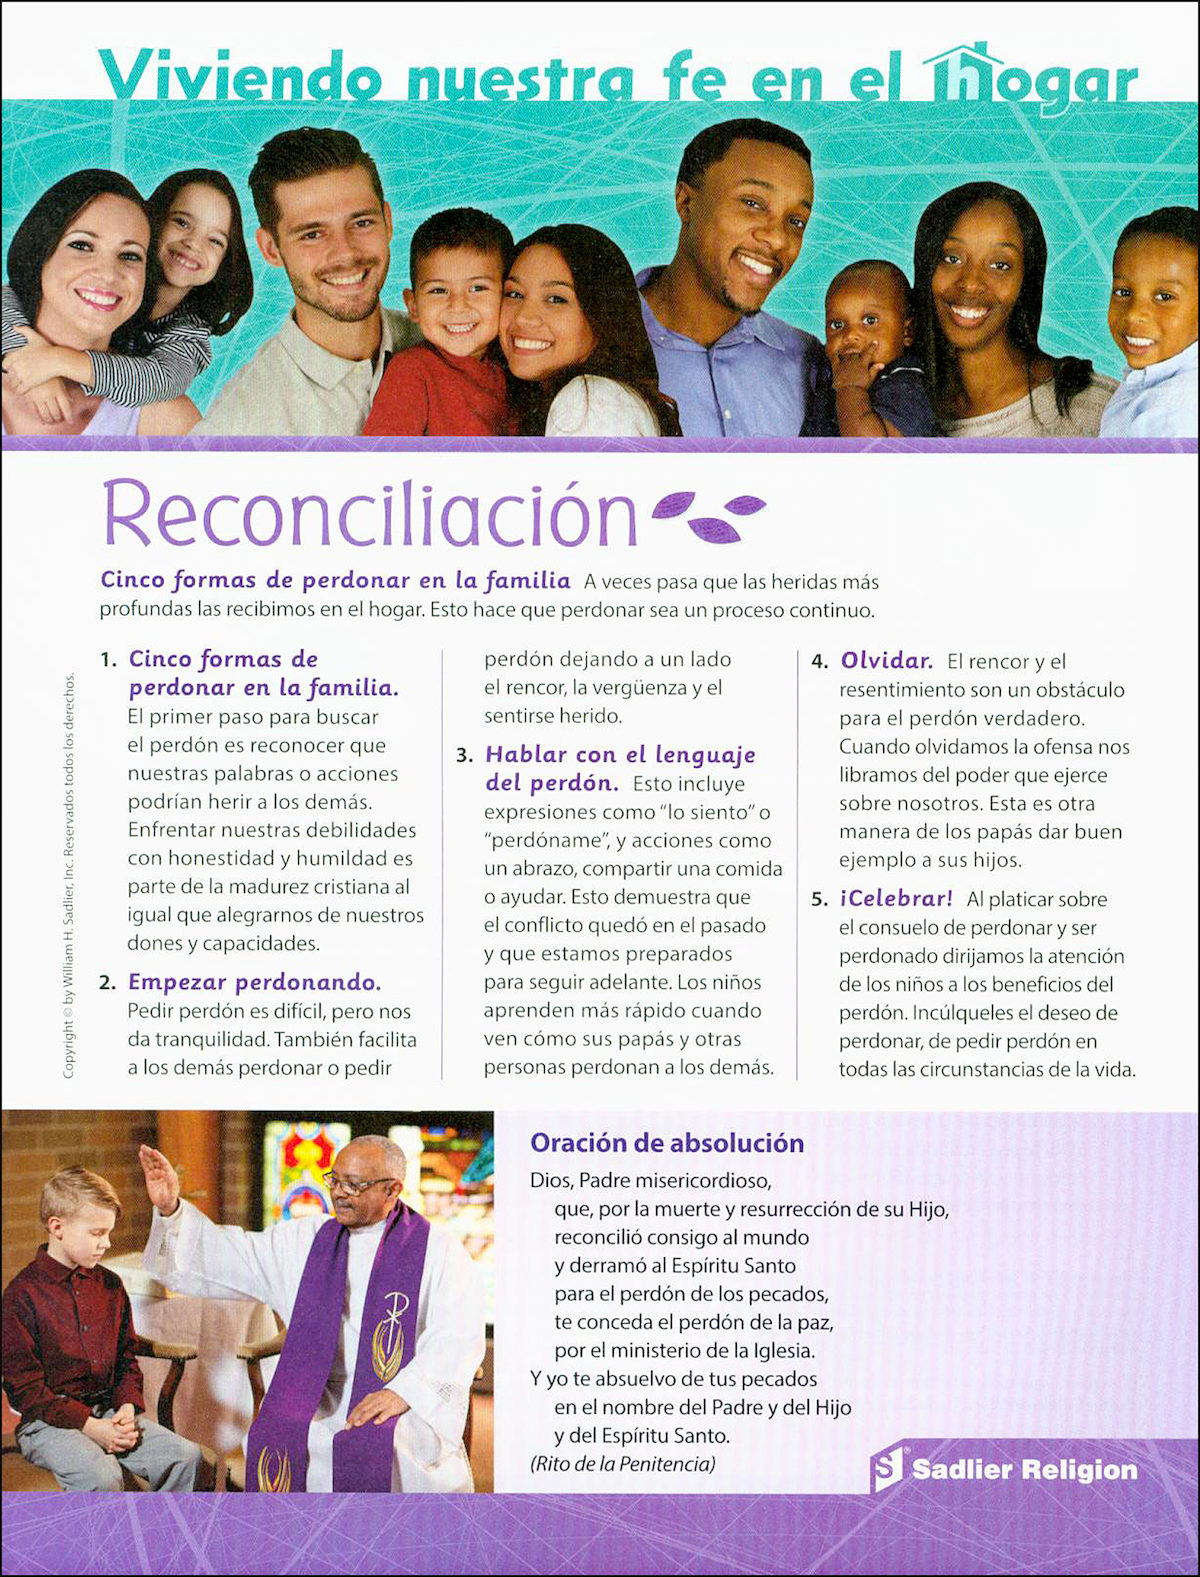 creer celebrar vivir  la reconciliaci u00f3n  living our faith at home  reconciliation  10